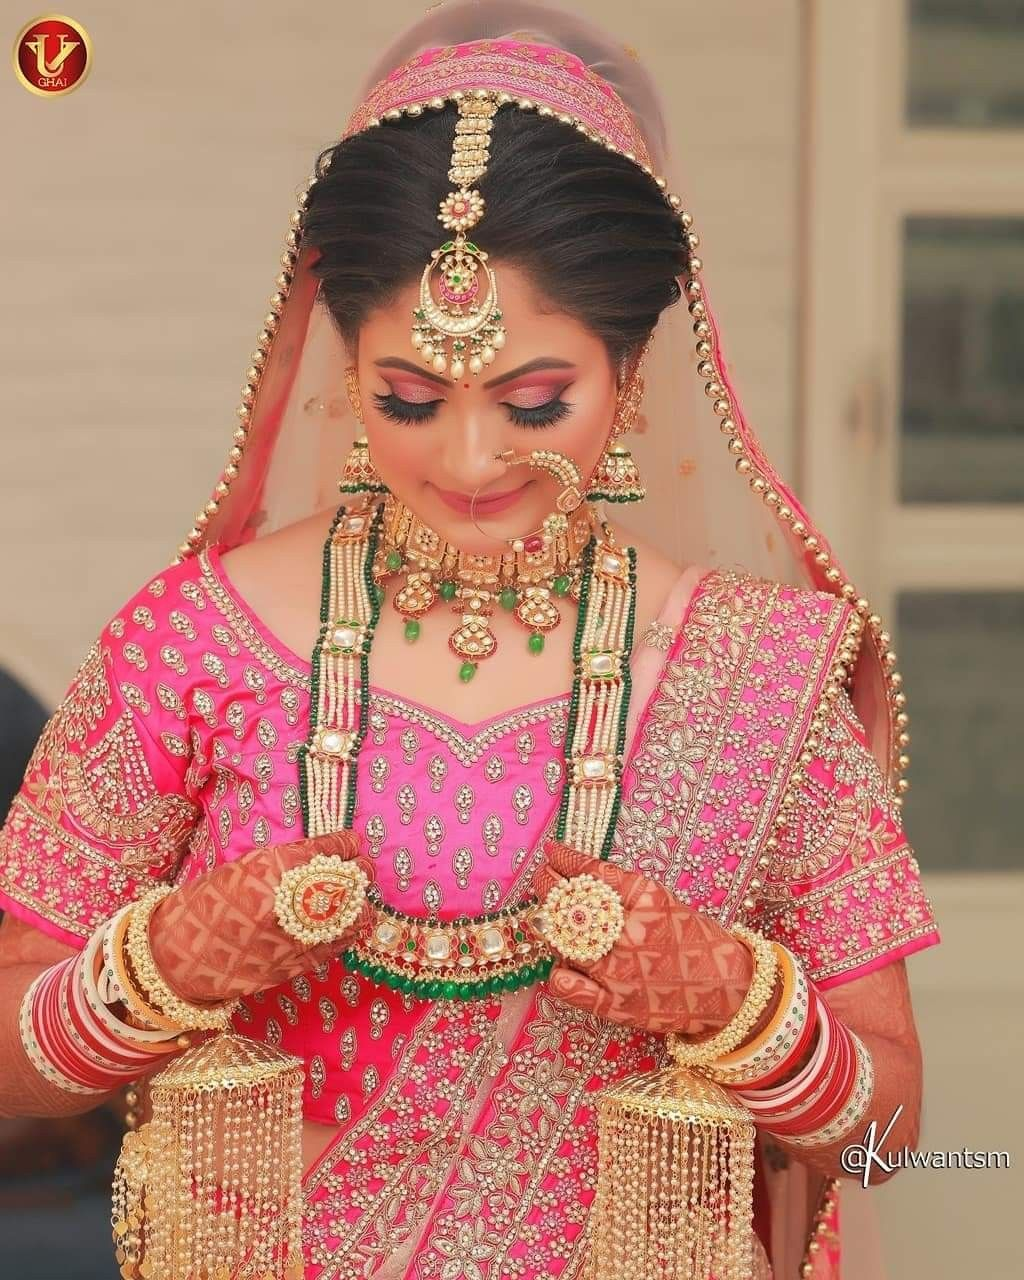 Pin by urmila jasawat on aBridal photography Bridal